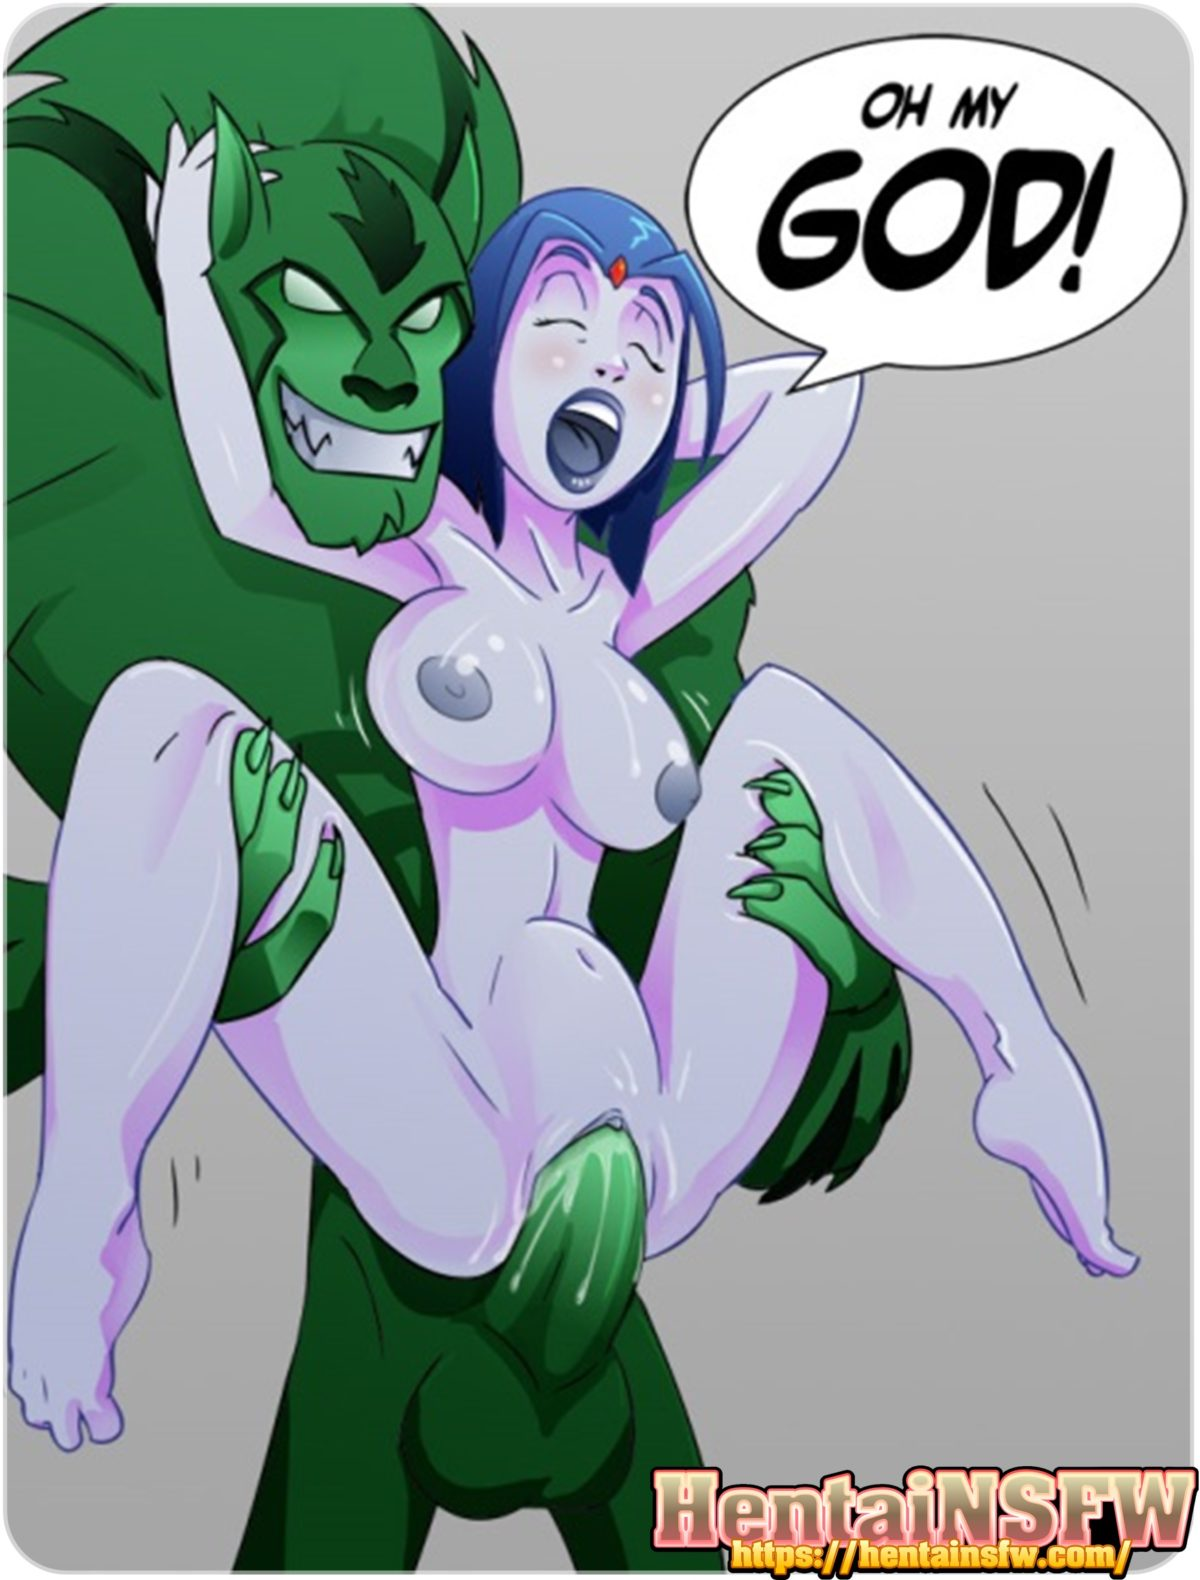 NSFW uncensored Teen Titans cartoon porn art of oppai hentai Raven on Beast Boy's monster cock sex illustration.